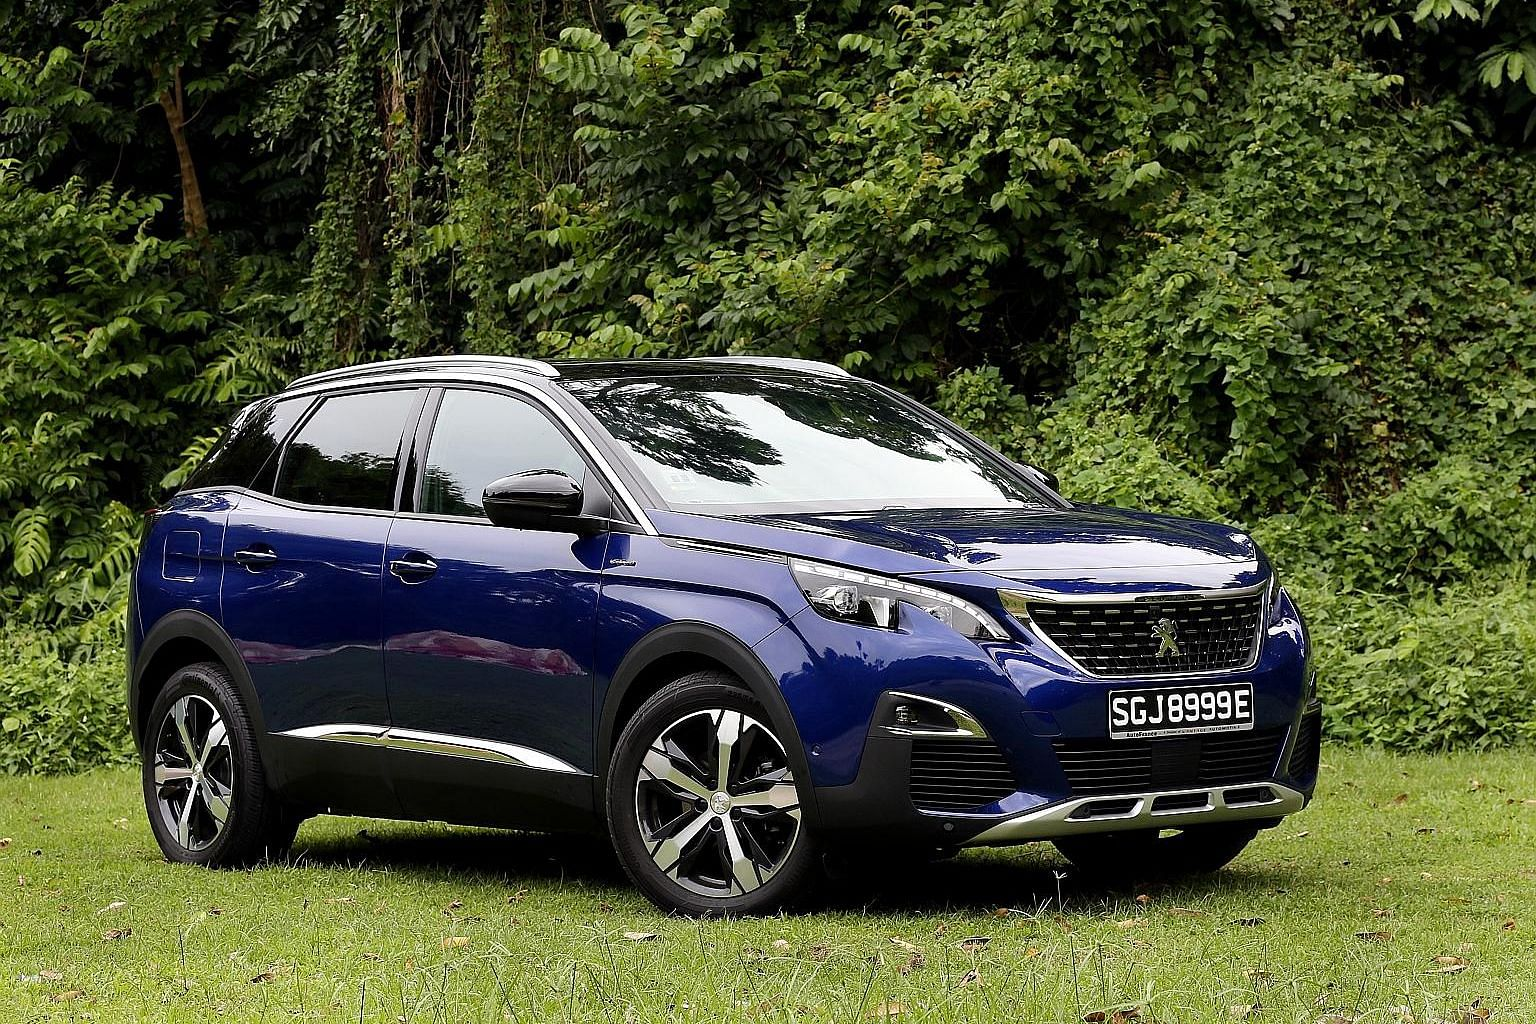 The Peugeot 3008 1.6 HDi provides smooth and linear steering and is highly driveable.